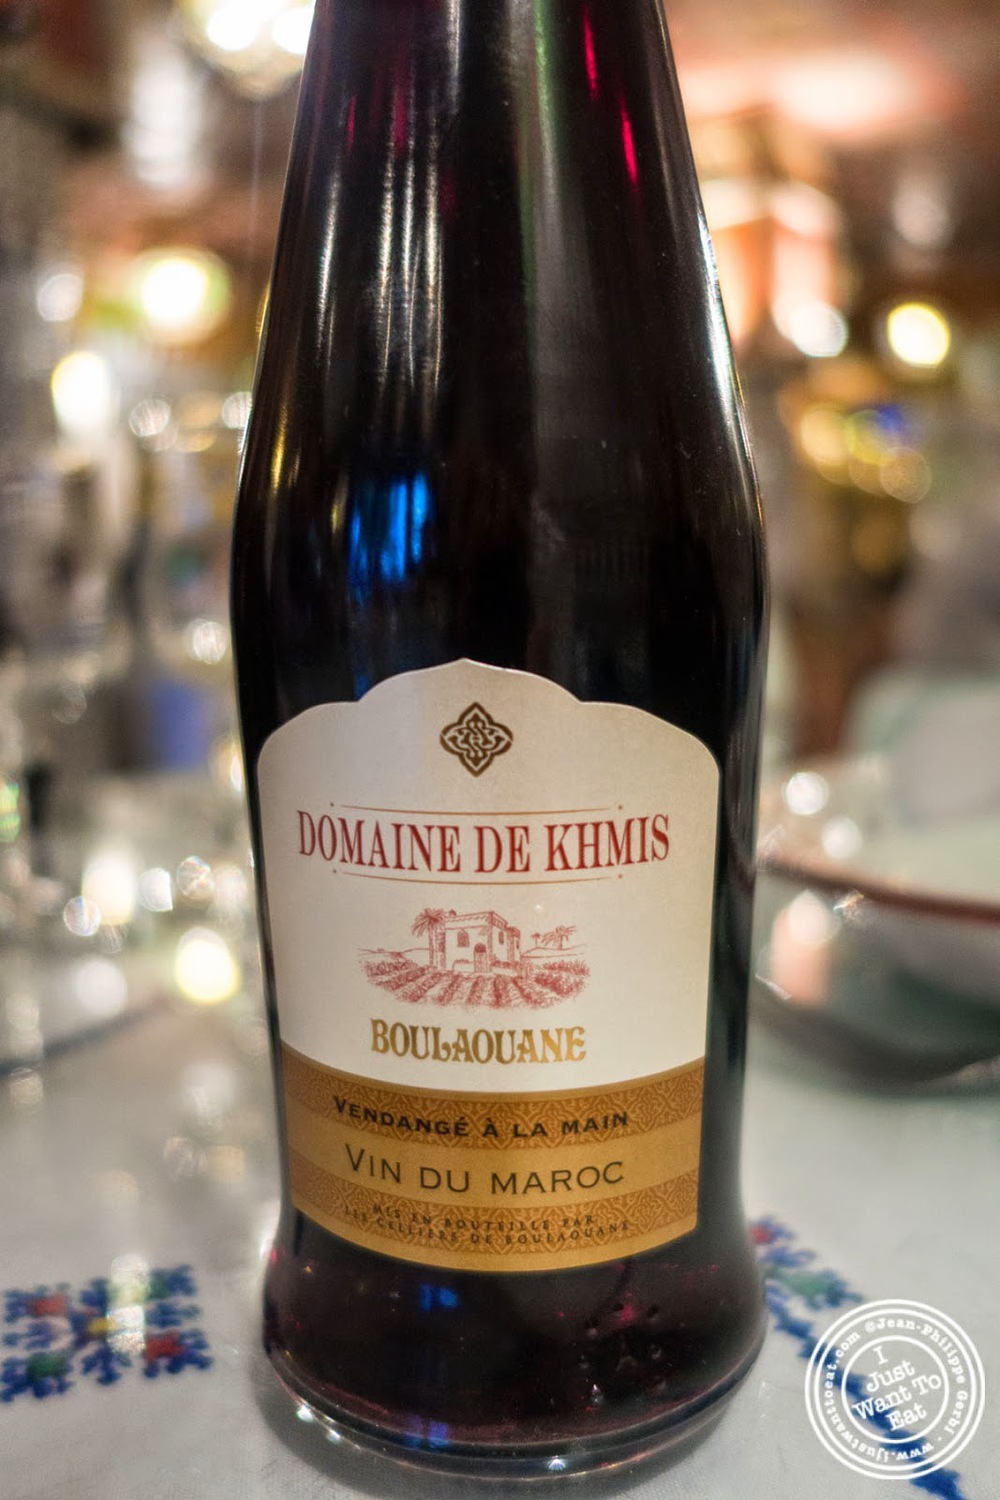 image of boulaouane wine at Le Marrakech, Moroccan restaurant in Grenoble, France